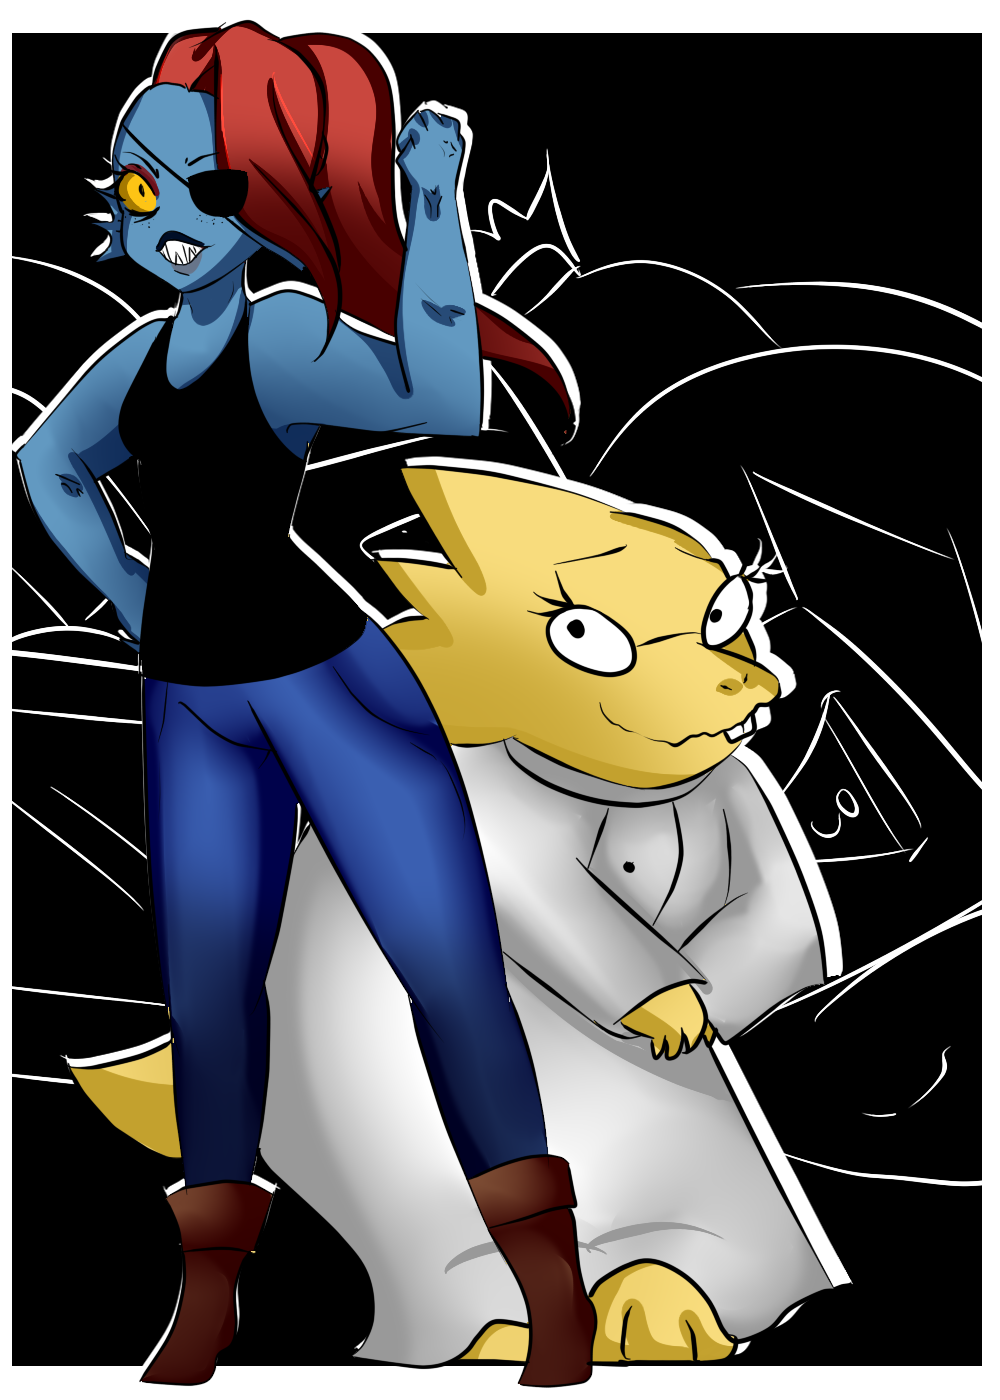 undertale alphys and undyne - photo #11